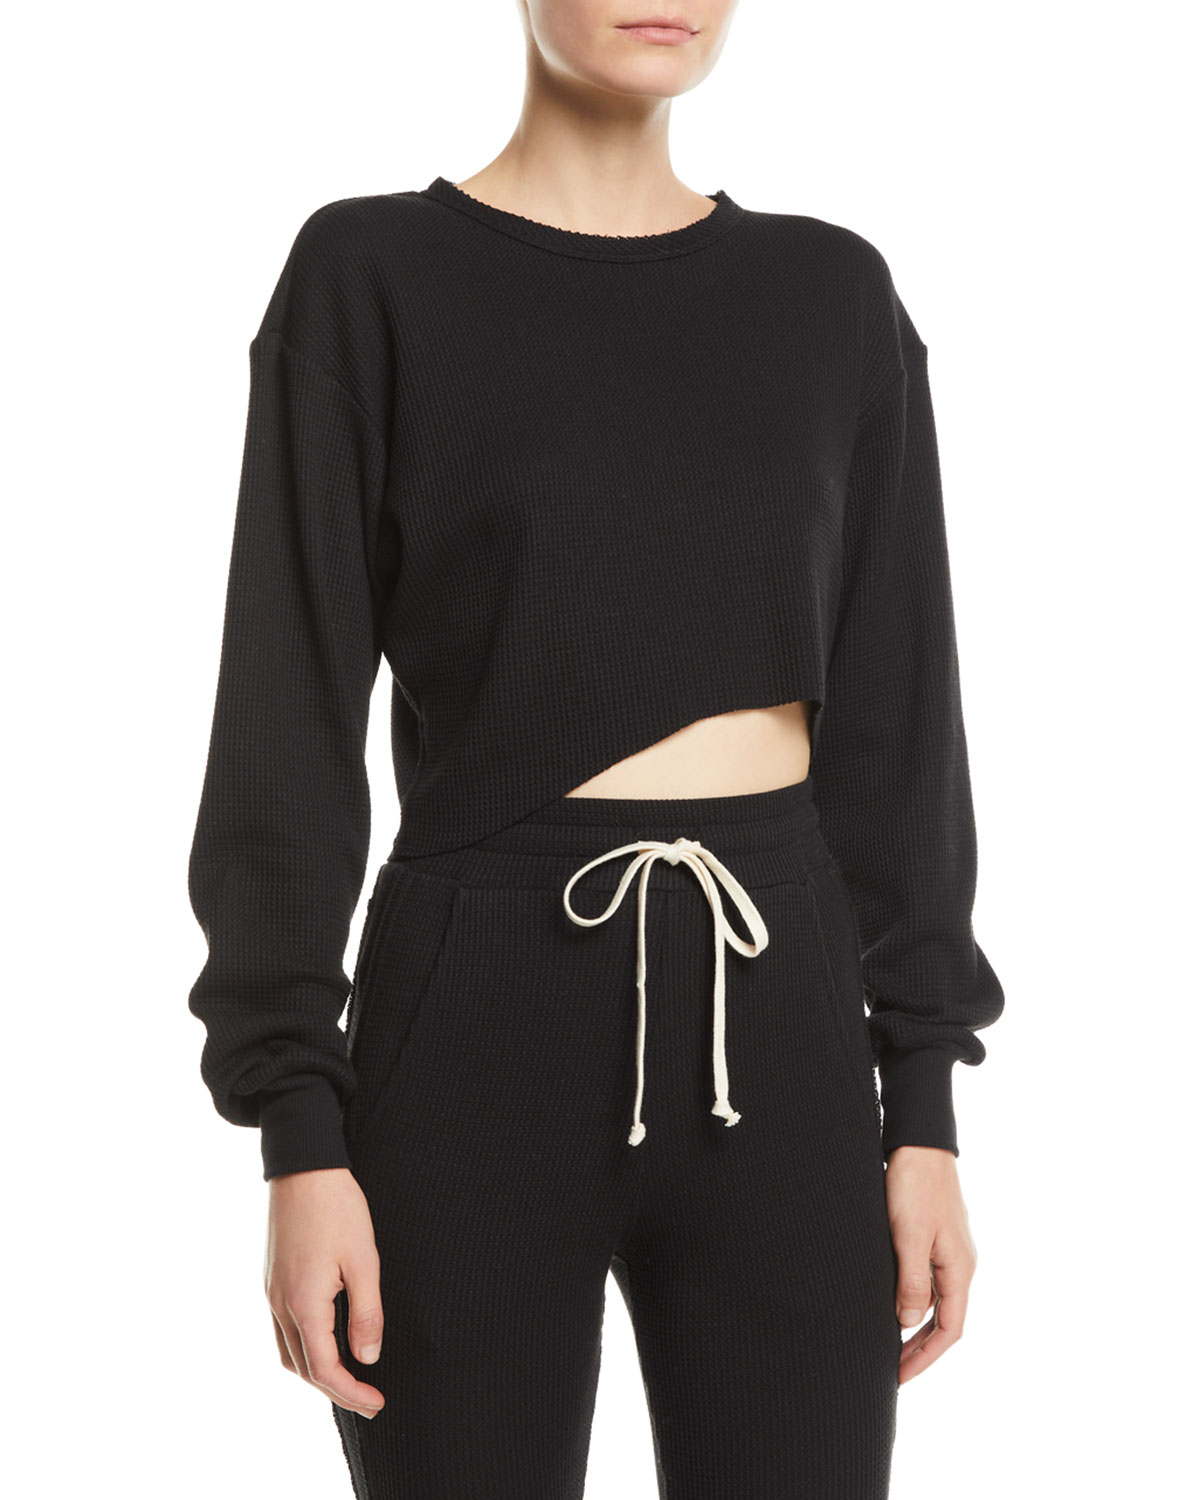 TWENTY Everest Cropped Thermal Top in Black